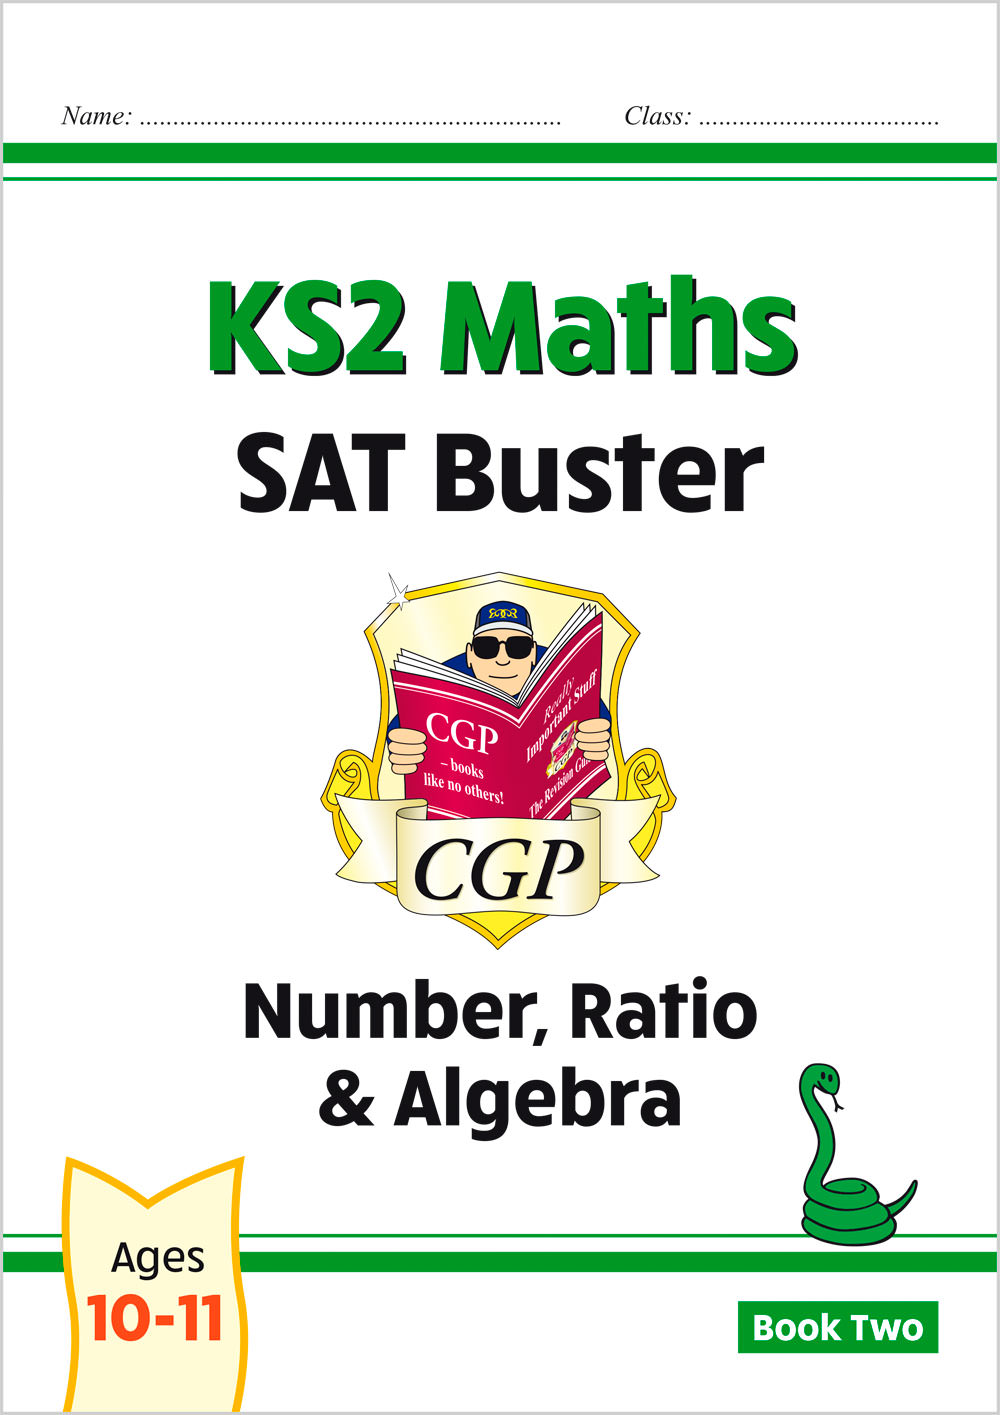 M6N222 - New KS2 Maths SAT Buster: Number, Ratio & Algebra - Book 2 (for the 2021 tests)